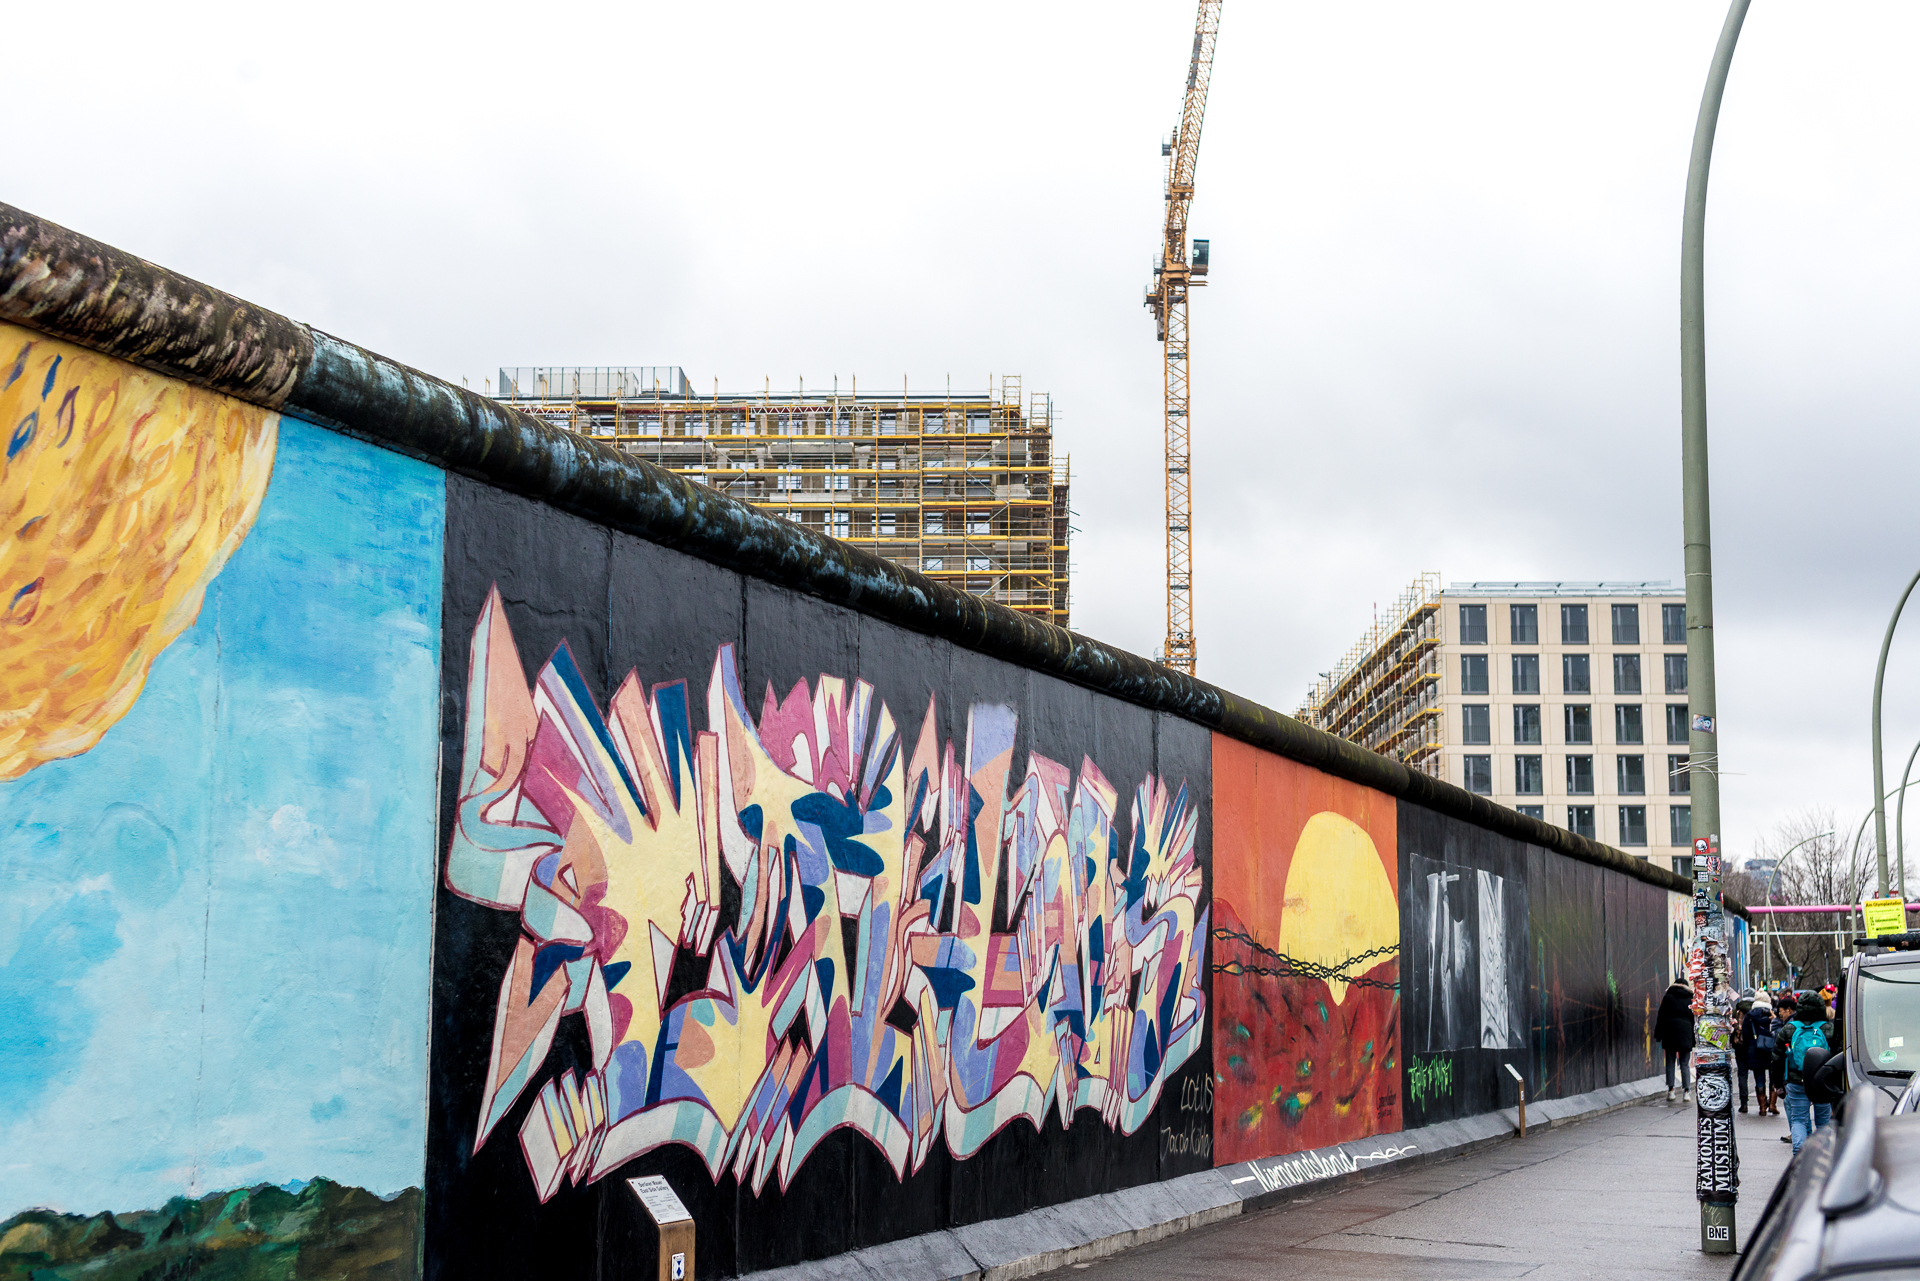 A stretch of the East Side Gallery showing different bright- colored murals on the wall in Berlin, Germany